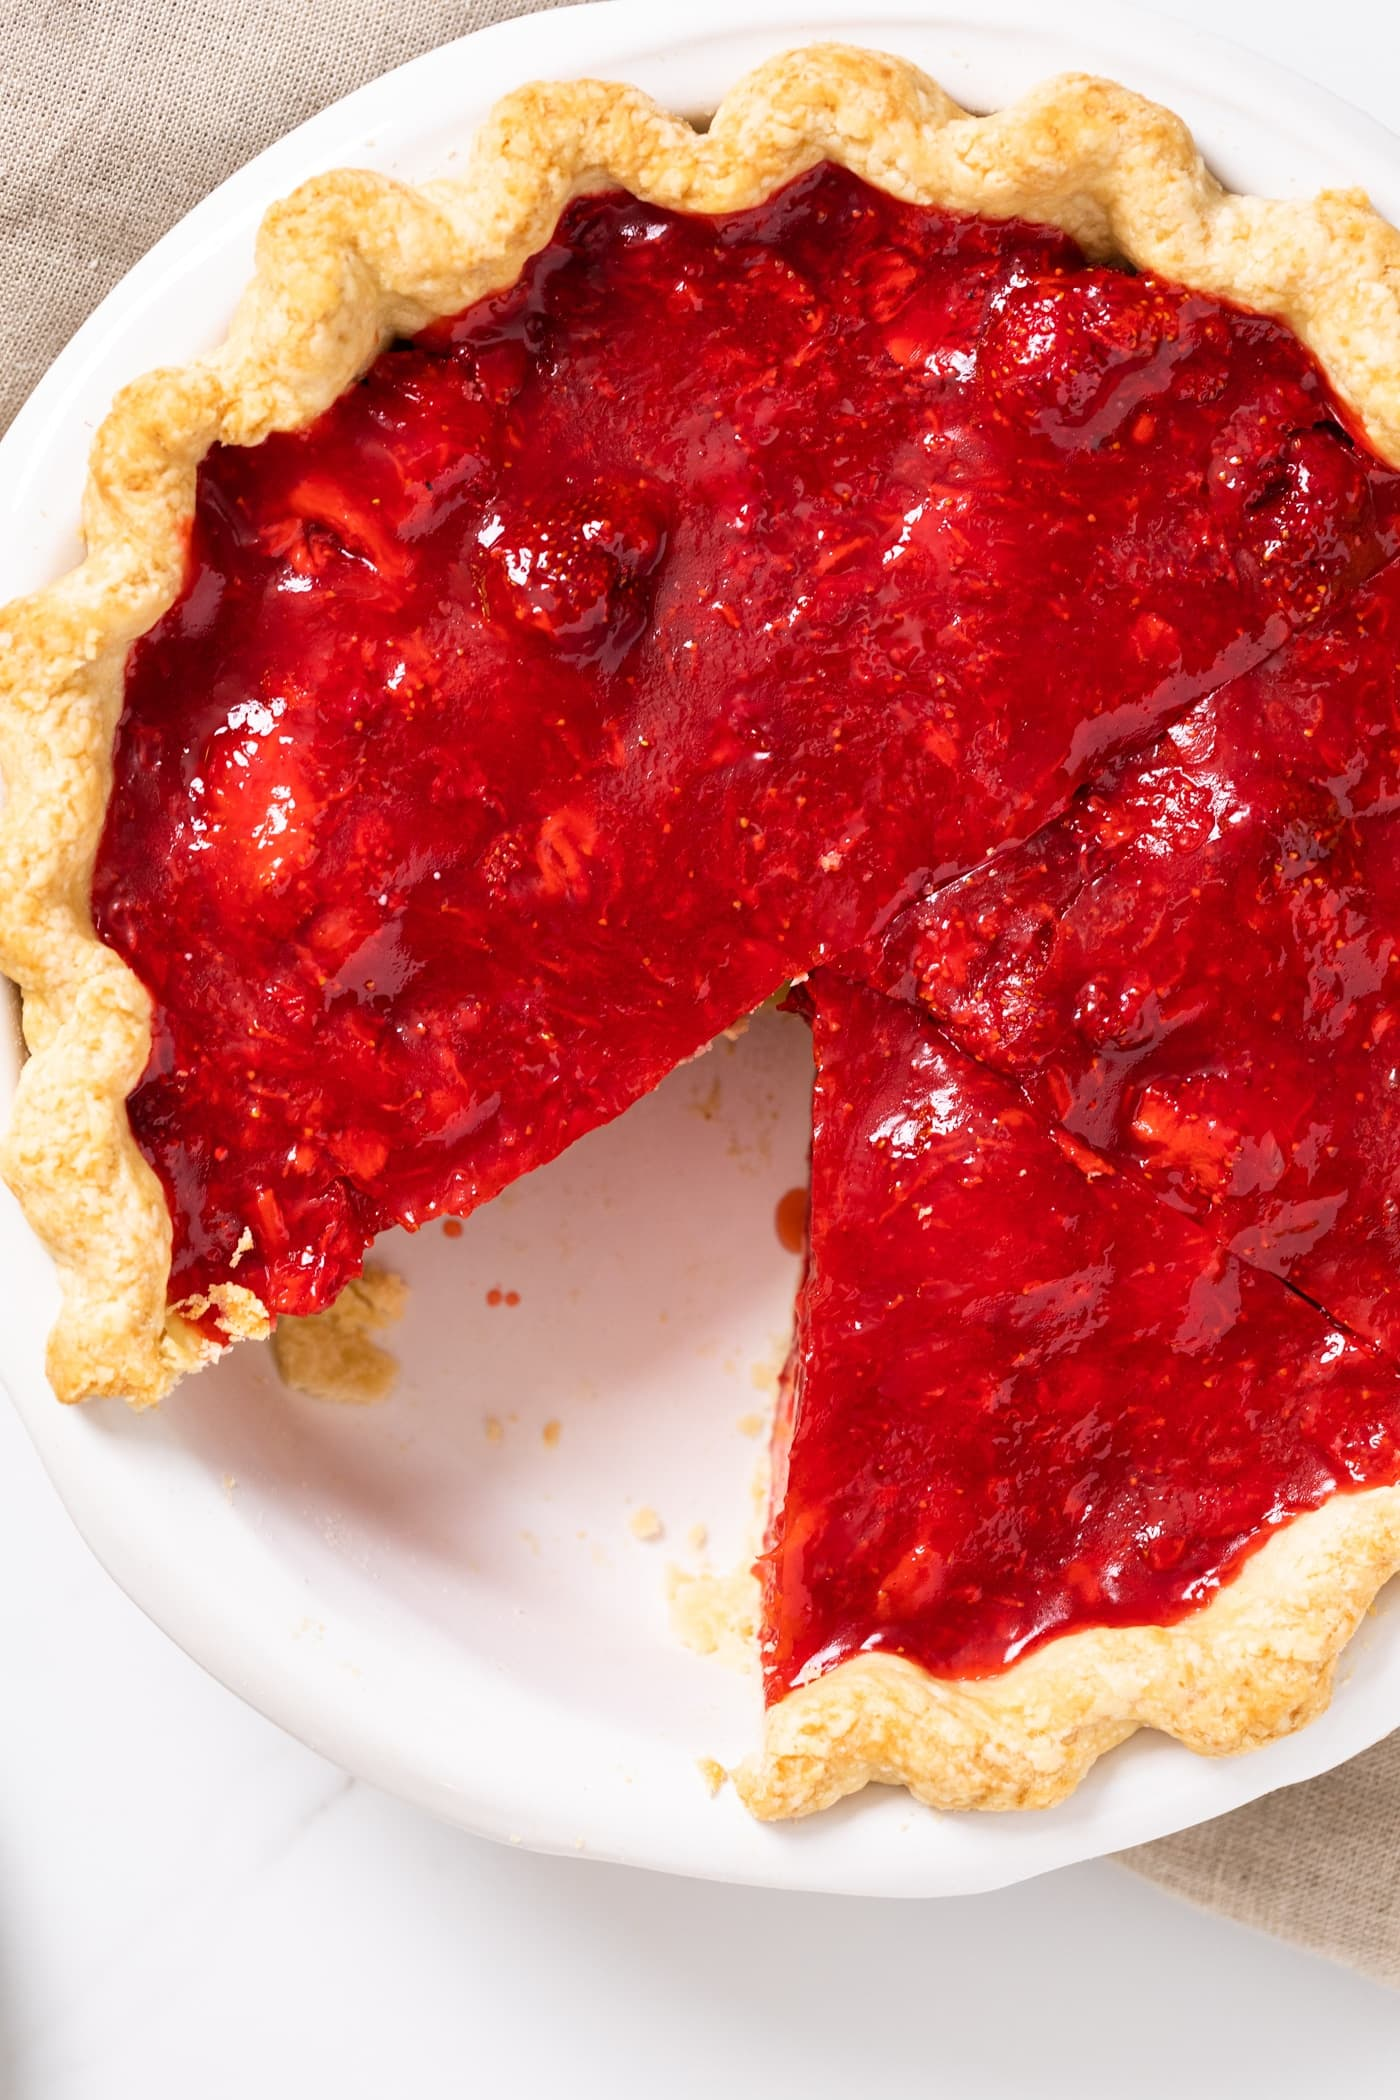 Top down view of strawberry pie with slice cut out sitting one white countertop